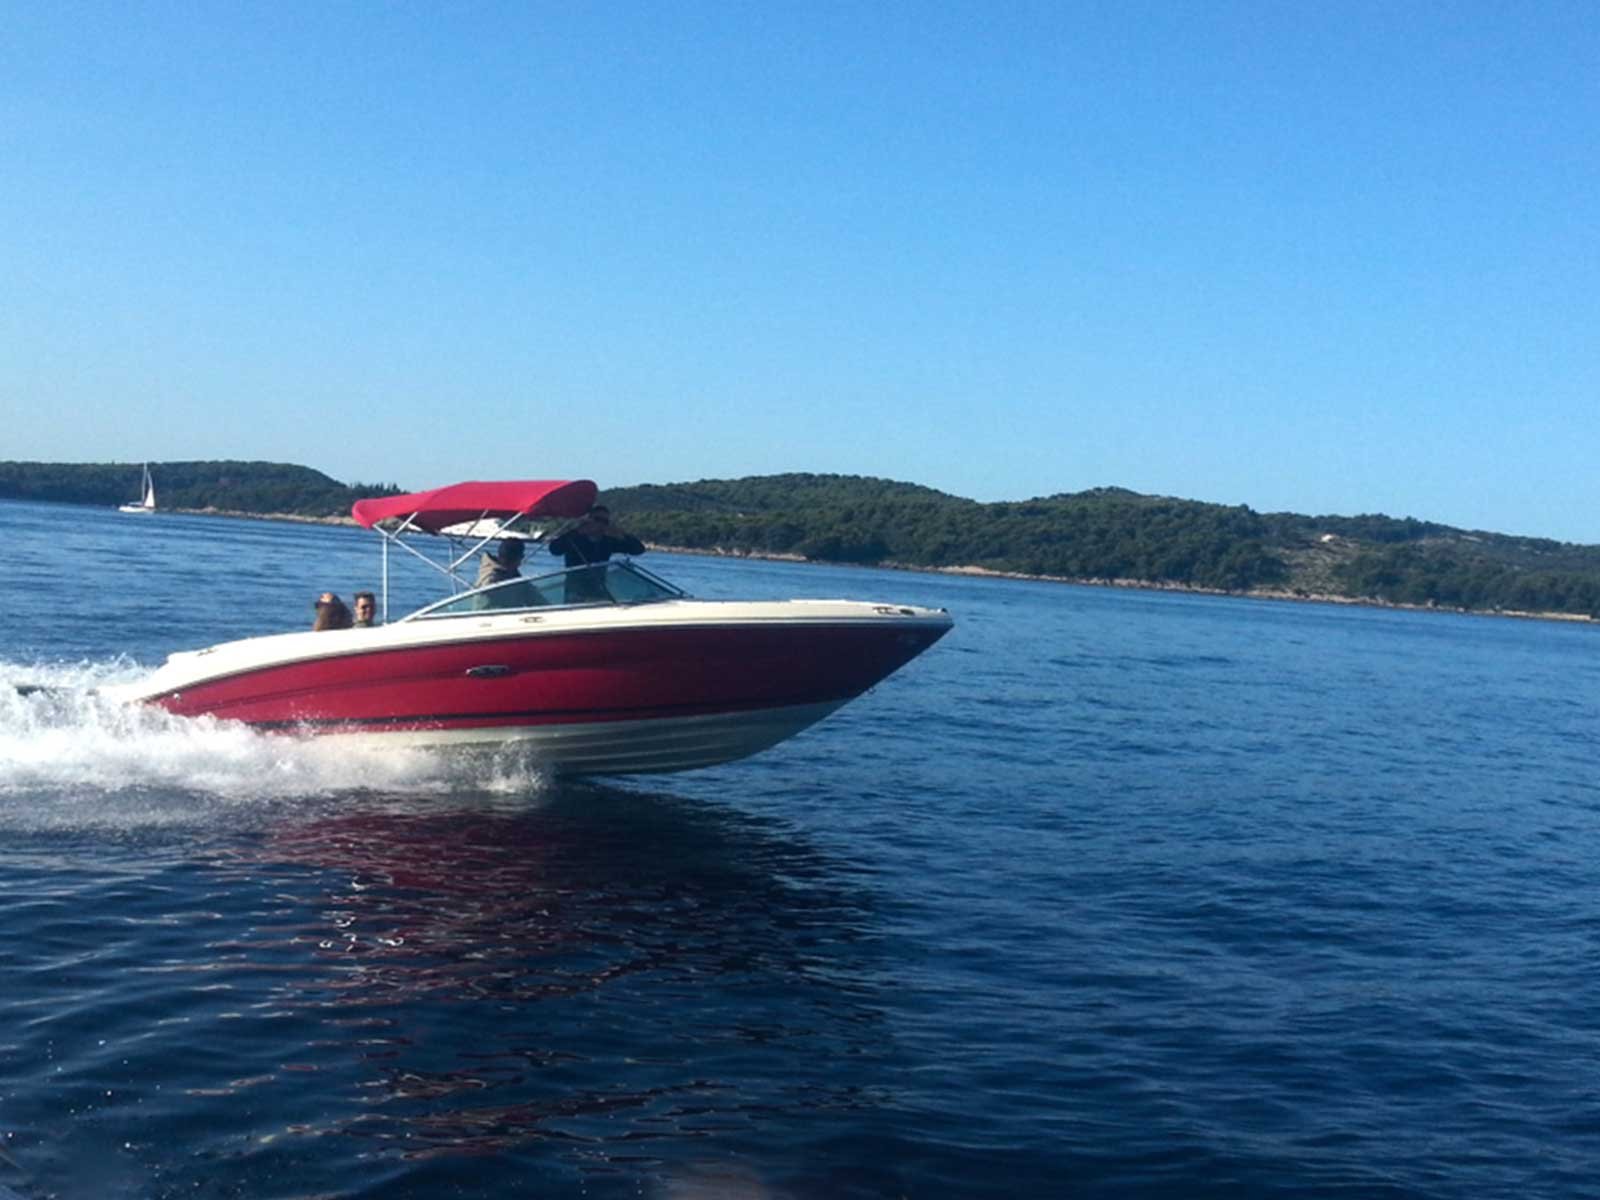 -images-excursions-elaphite-islands-speed-boat-excursion-a-speed-boat-dubrovnik-sea-ray-220.jpg